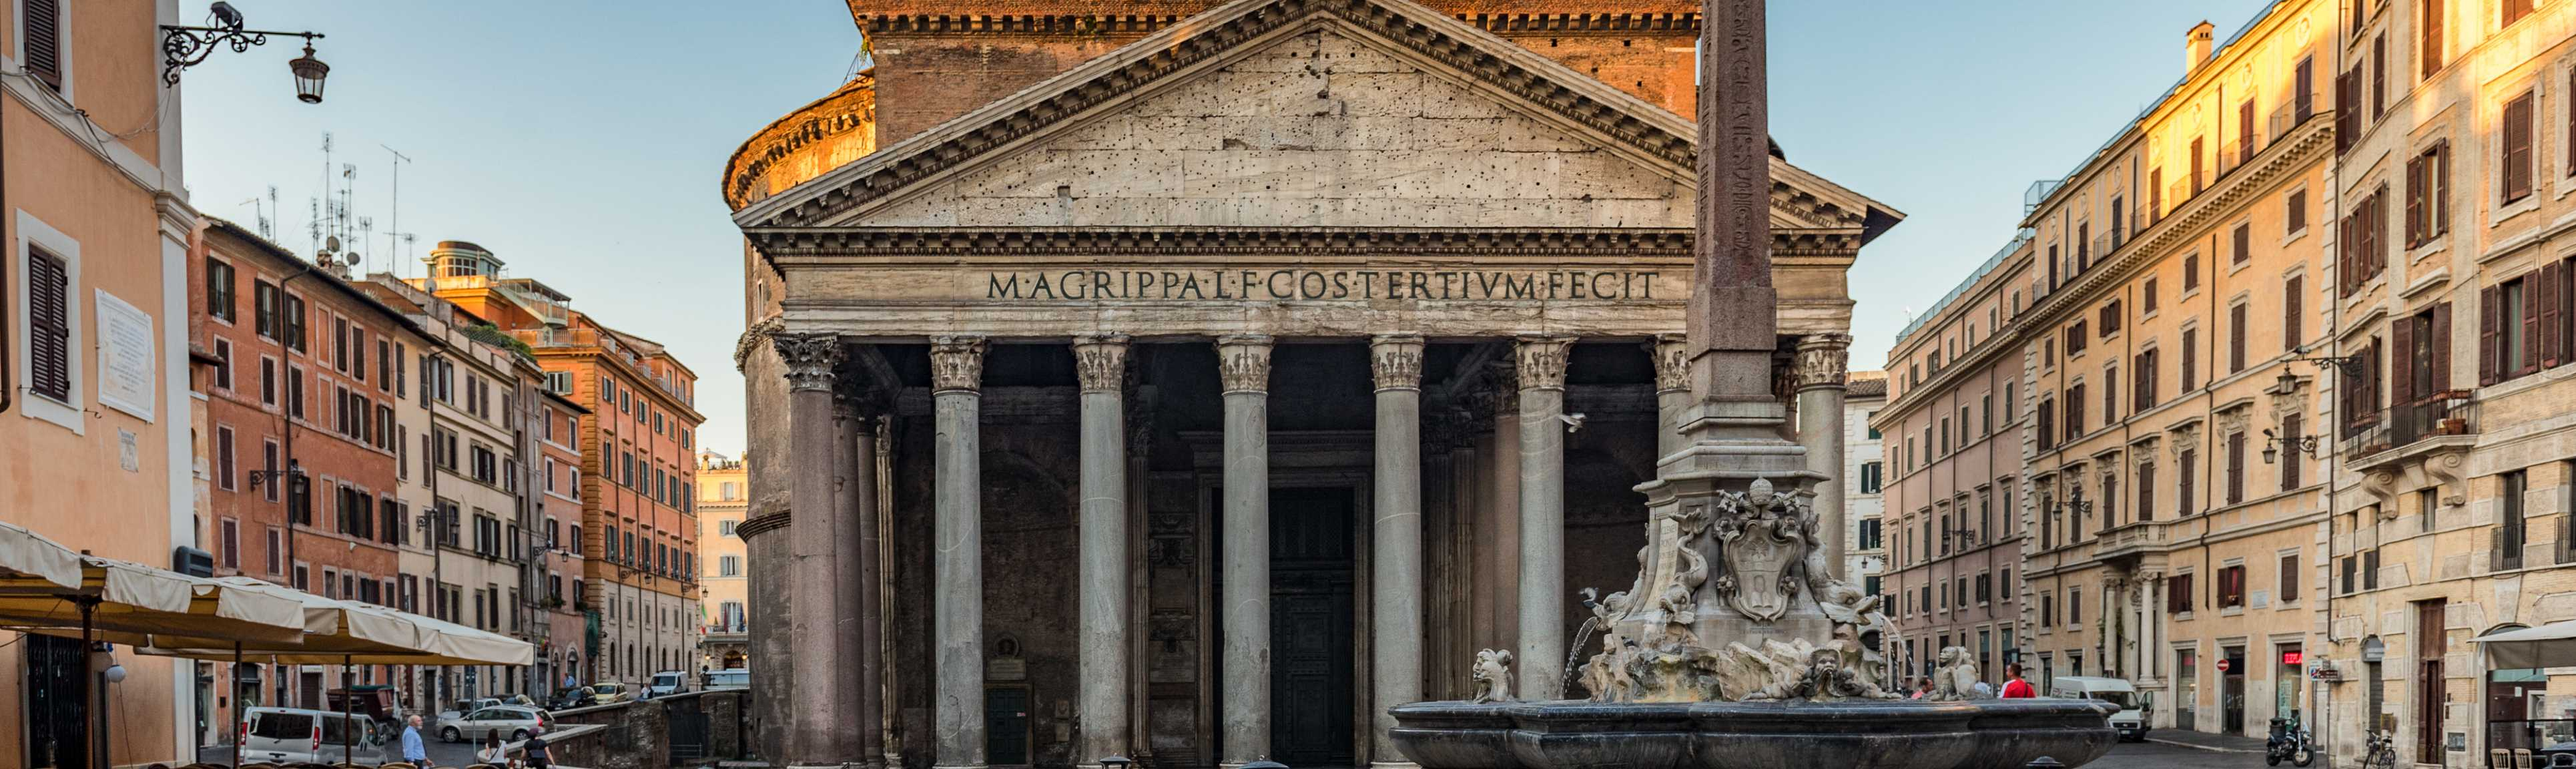 Piazza della Rotonda showing facade of Pantheon in Rome